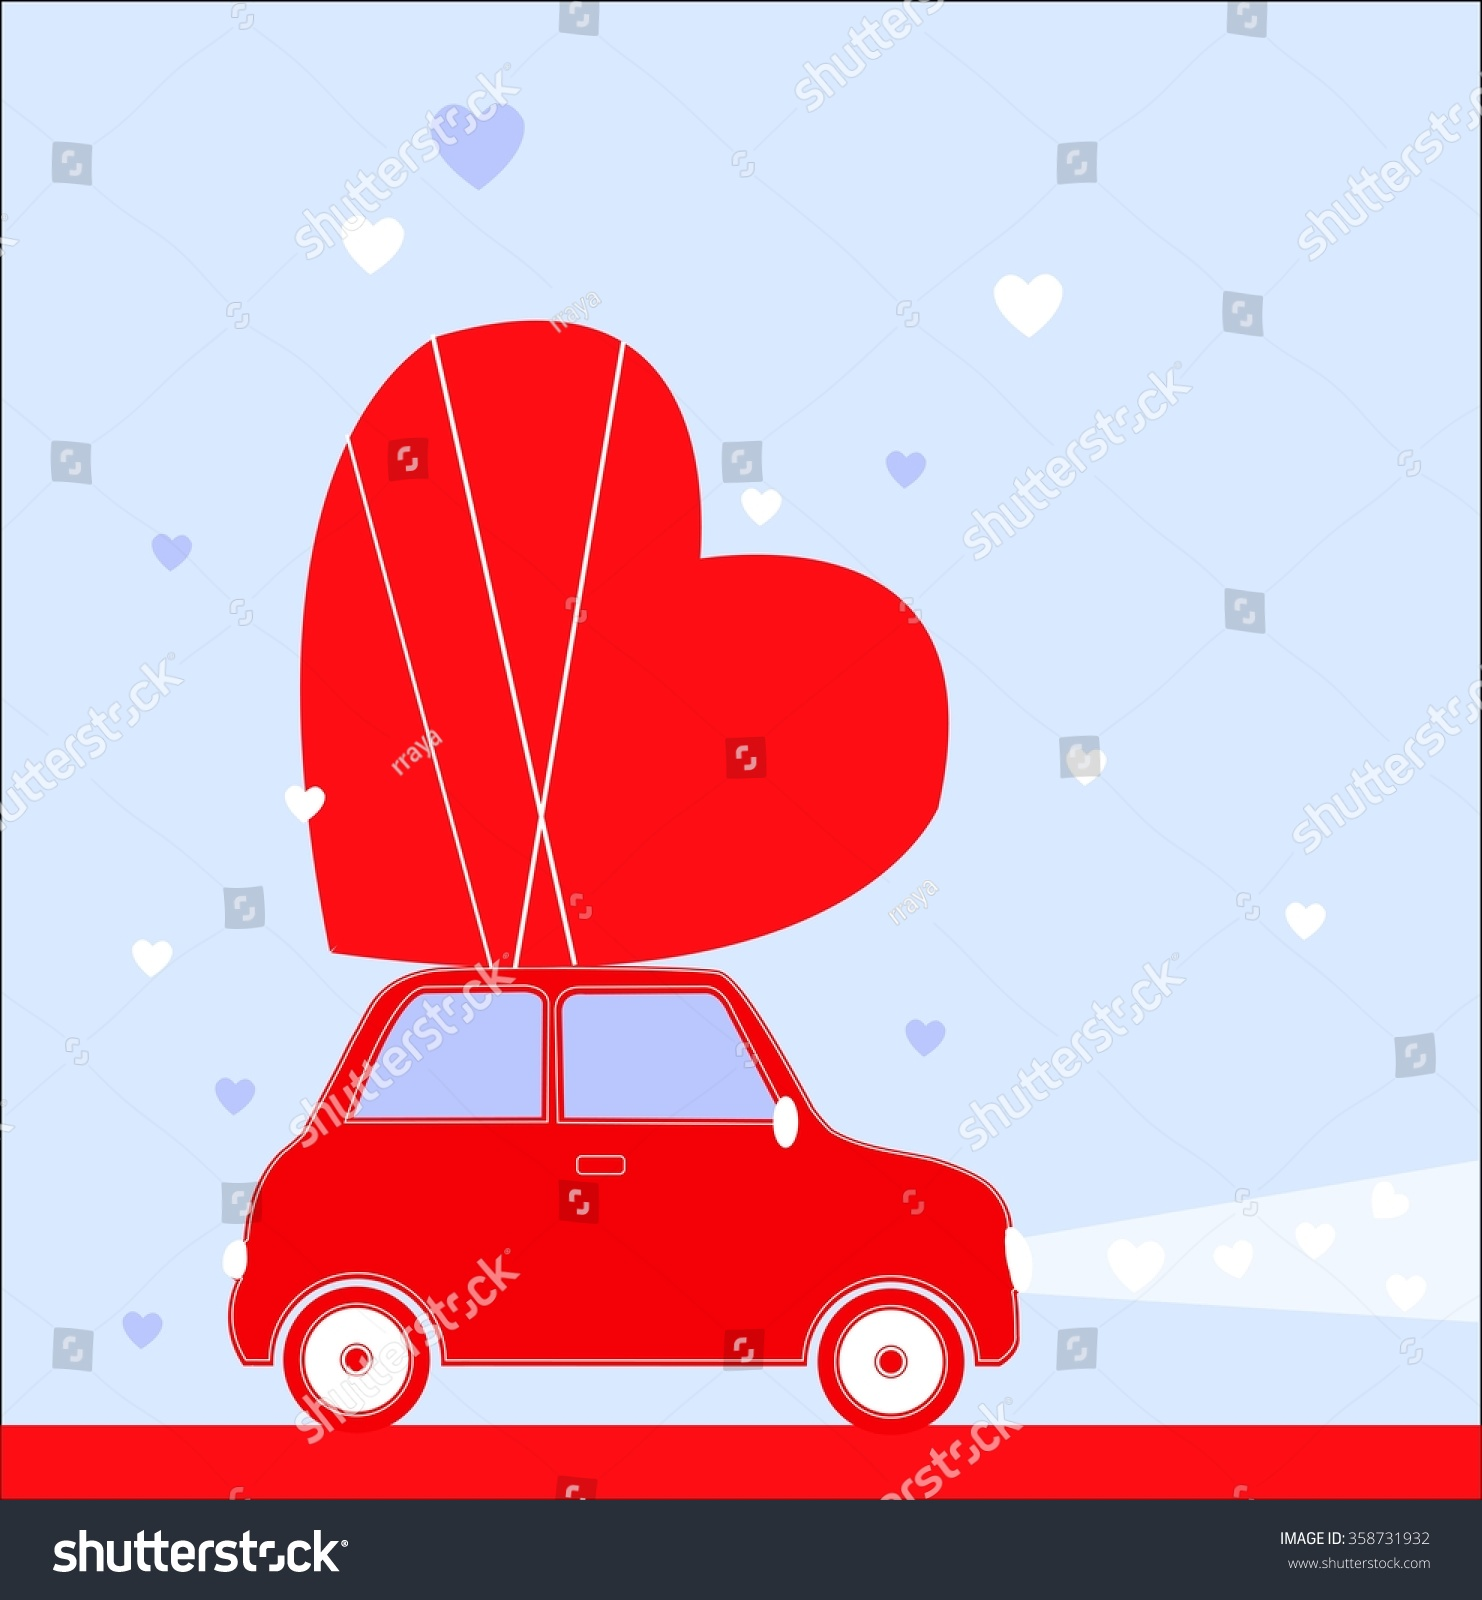 Red Car With Big Heart. Valentineu0027s Day Vector Illustration.